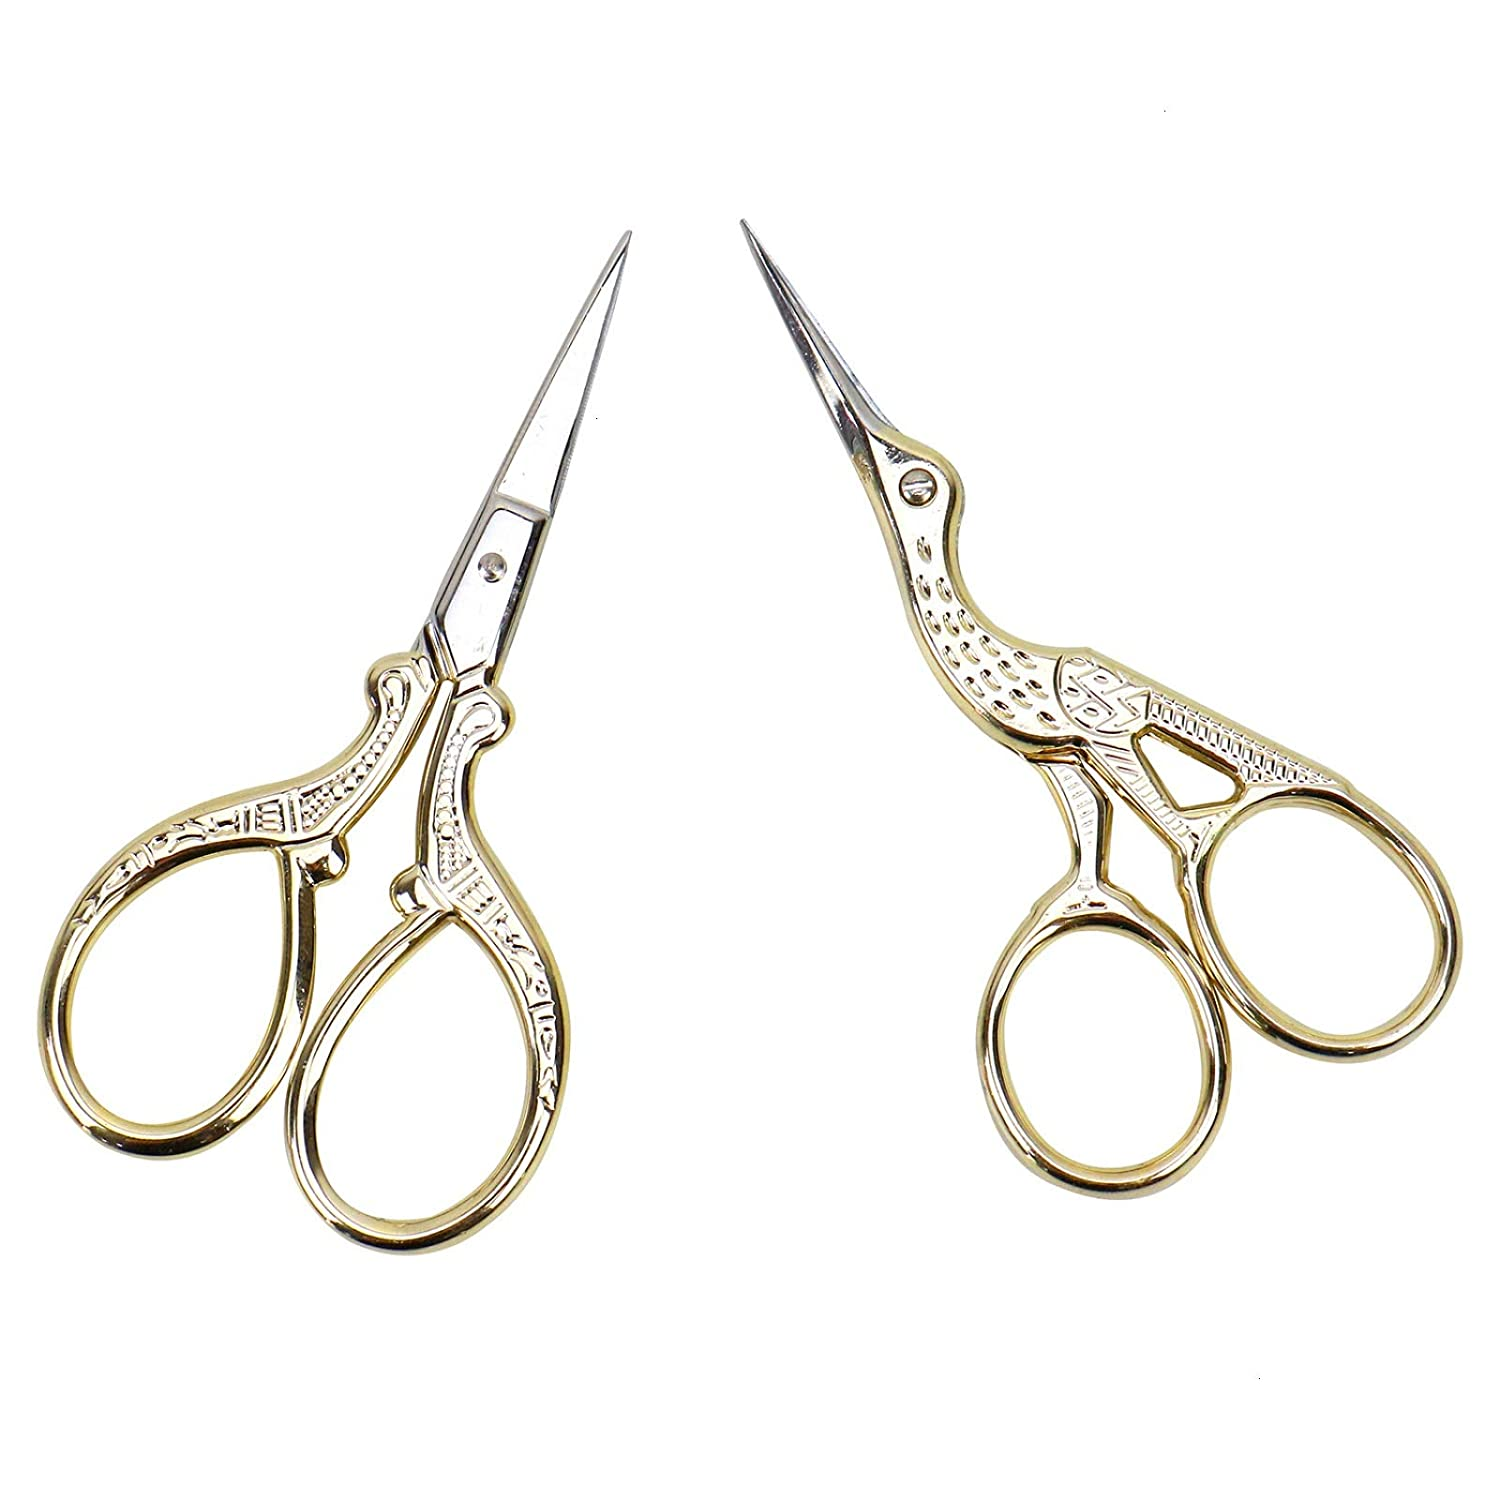 AQUEENLY Embroidery Scissors, Stainless Steel Sharp Stork Scissors for  Sewing Crafting, Art Work, Threading, Needlework - DIY Tools Dressmaker  Small